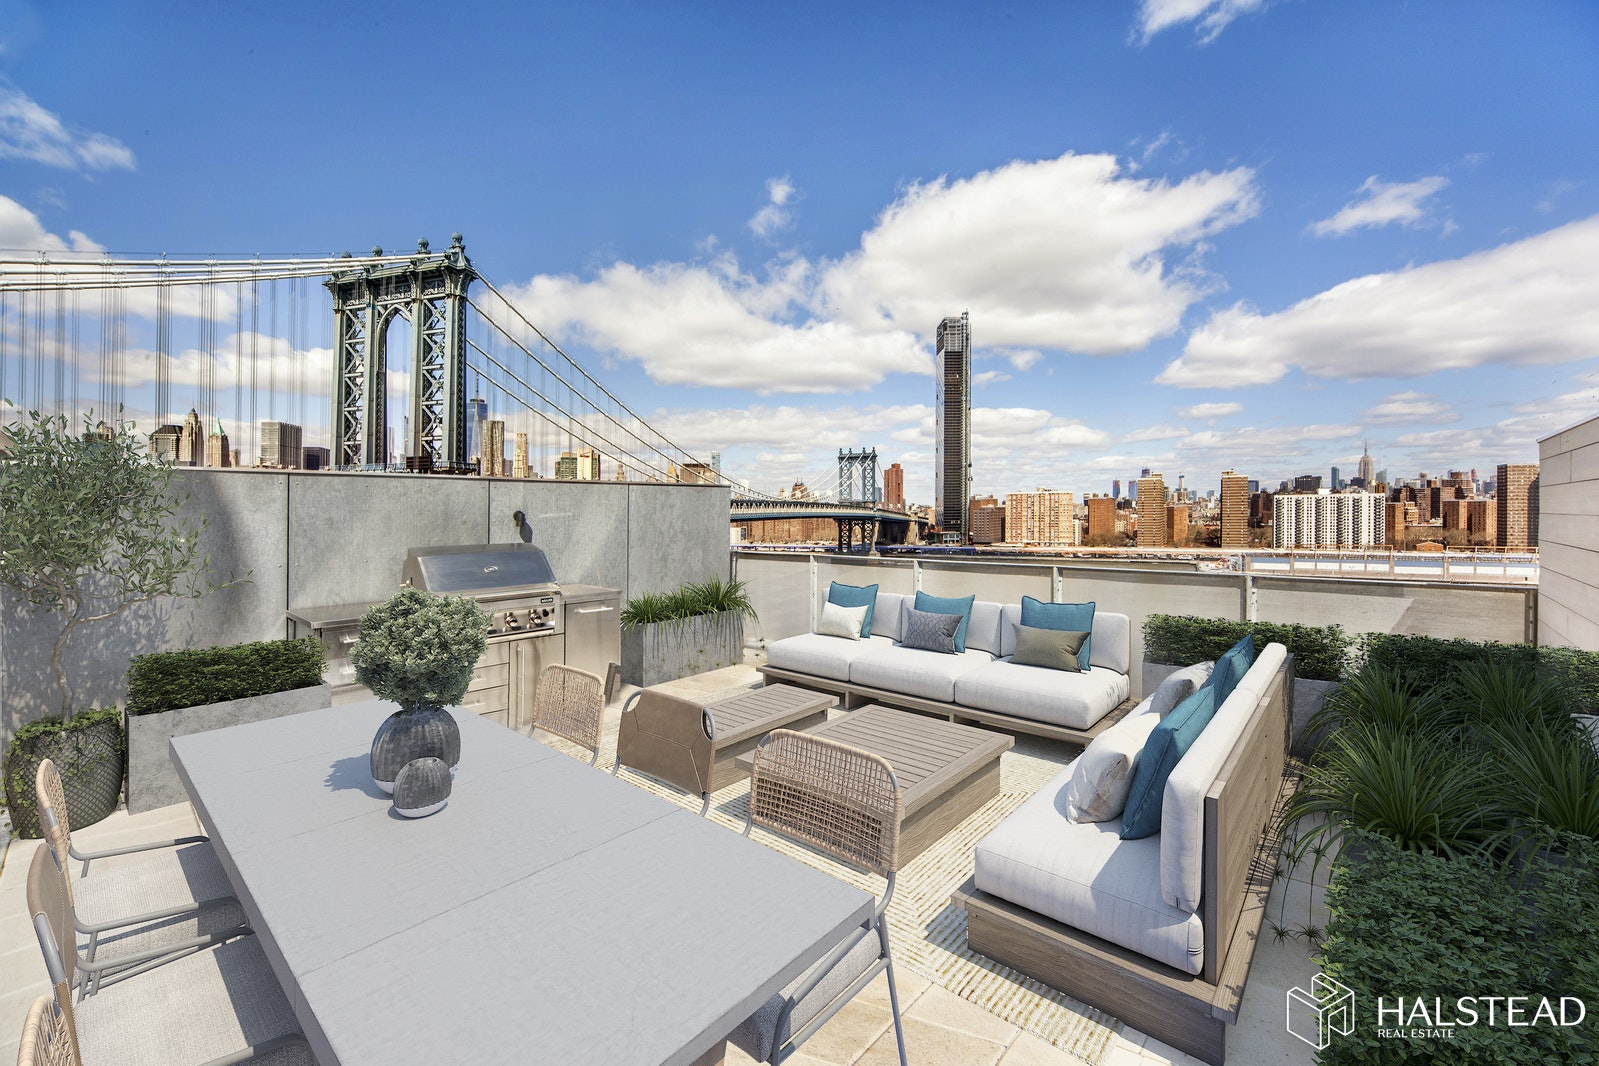 Absolutely stunning penthouse in DUMBO's premier, multi-award winning boutique condominium.This light-filled corner residence boasts 2,539 SF interior/ 700 SF exterior space. Light pours into this 4 bedroom, 3.5 bathroom penthouse from three exposures by 22 oversized, motorized windows. You will be transported as you watch the boats pass by on the river with the Empire State Building and the Manhattan and Williamsburg bridges in view.There is also an option to purchase the apartment just below to create the ultimate in luxury, a duplex penthouse totaling 5,176 SF. Architect plans that illustrate various combination are available by request.This is the perfect home for entertaining with its generous open layout, integrated speakers throughout and a Creston lighting and shade system. The kitchen features a Basaltina stone counter, a wall of integrated full height Italian cabinetry by RiFRA with Gaggenau appliances, a Bosch dishwasher, vented ceiling hood and wine fridge. The living room is planked by a ventless eco-fireplace and sliding glass doors that completely open to a glass enclosed courtyard which offers the ultimate indoor-outdoor living experience.Travel up the courtyard stairs to your private roof deck complete with a gas grill and breathtaking views of the entire Manhattan skyline. Back downstairs, just beyond the entertaining space is currently a media room closed off by glass pocket doors, this can easily be converted to fourth bedroom. Journey pass the powder room, farther down the hallway to the private sleeping quarters. The master suite on the South/East corner features double exposures, a large outfitted walk in closet by California Closets and a spacious windowed bathroom with Dornbracht Fantini fixtures, white lacquer vanities, double shower heads and upgraded tile by Mutina. A laundry room complete with an LG washer and vented drier, two more generously sized and bright bedrooms complete the wing - one bedroom has a full bathroom across the hall and the other has an en-suite bath that is also outfitted with tiles by Mutina.Amenities include 24/7 doorman, lobby lounge with indoor and outdoor seating, gym designed by la Palestra, landscaped roof terrace with grill, bike storage and the prestigious LEED Gold Certification. Additional Storage and a parking spot around the block is also available for purchase.Showings by private appointment.